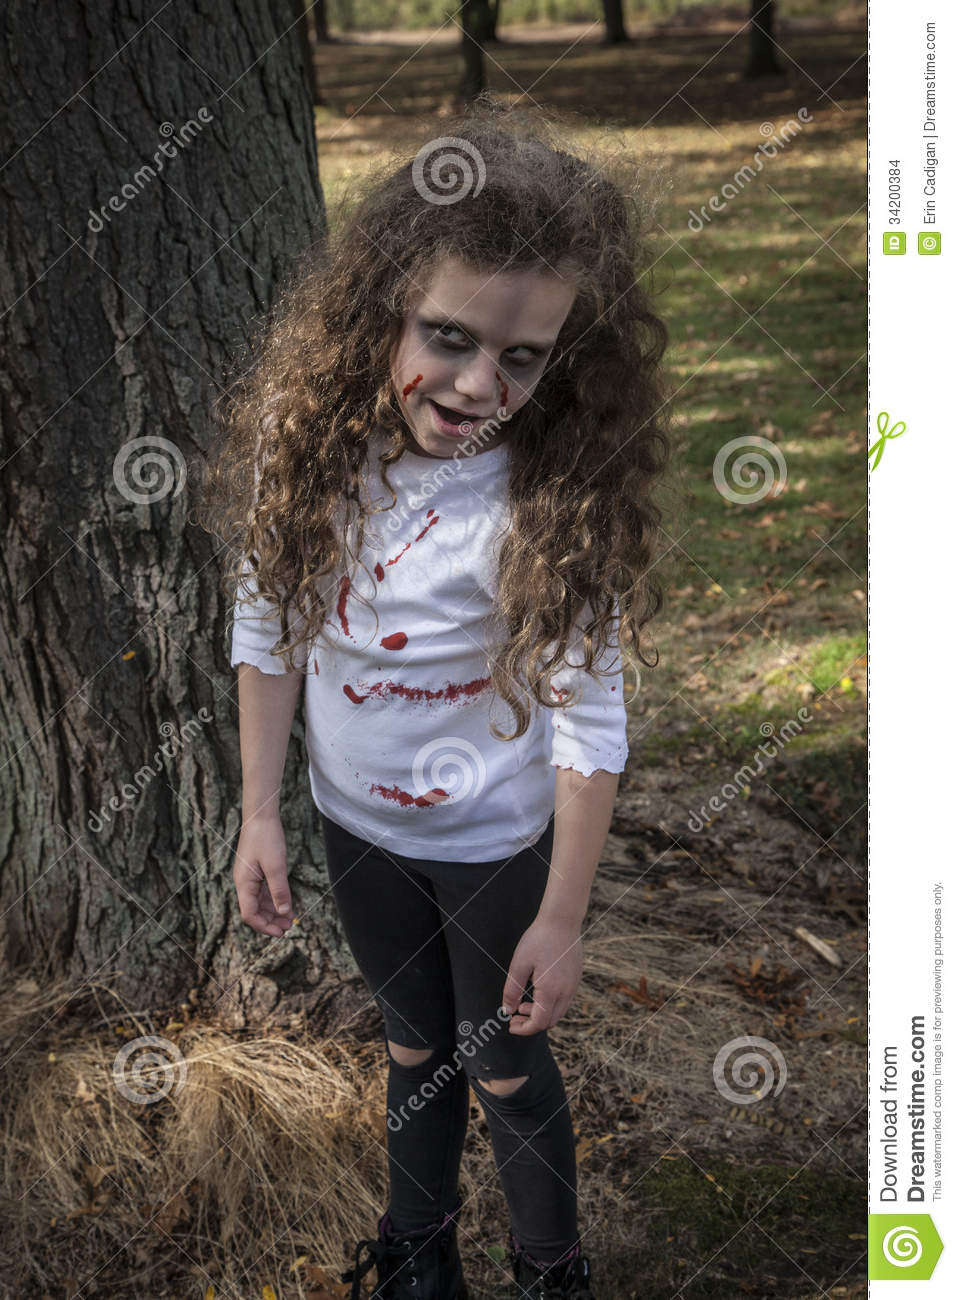 Little Zombie Girl Stock Images - Image: 34200384